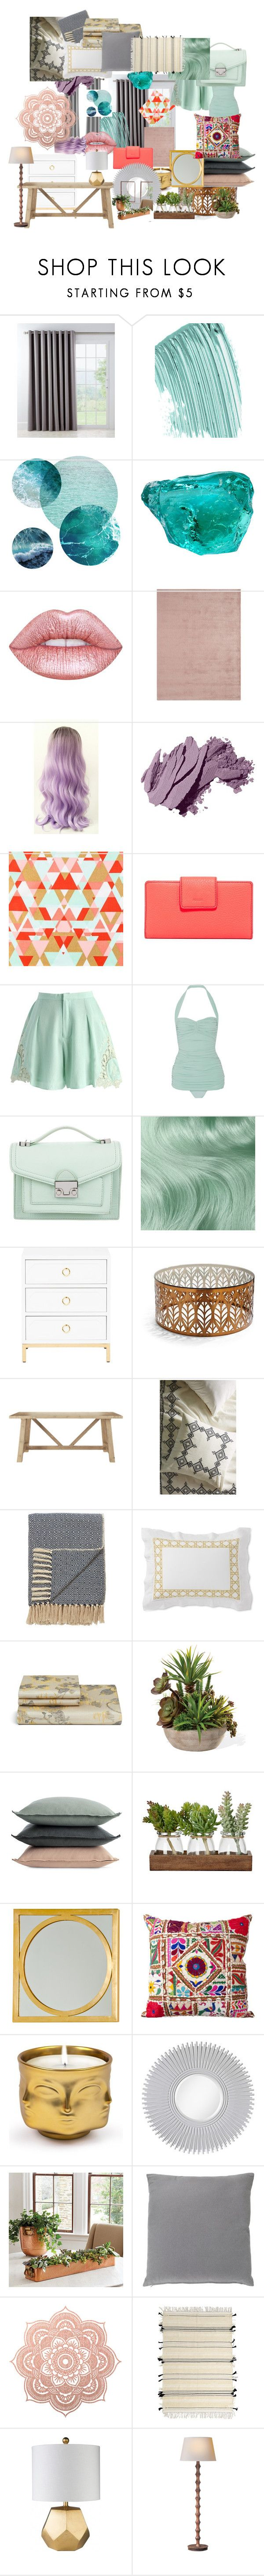 """""""2 Bailey Student Room Decor"""" by georgie-b on Polyvore featuring interior, interiors, interior design, home, home decor, interior decorating, Country Curtains, Chanel, Lime Crime and Bobbi Brown Cosmetics"""